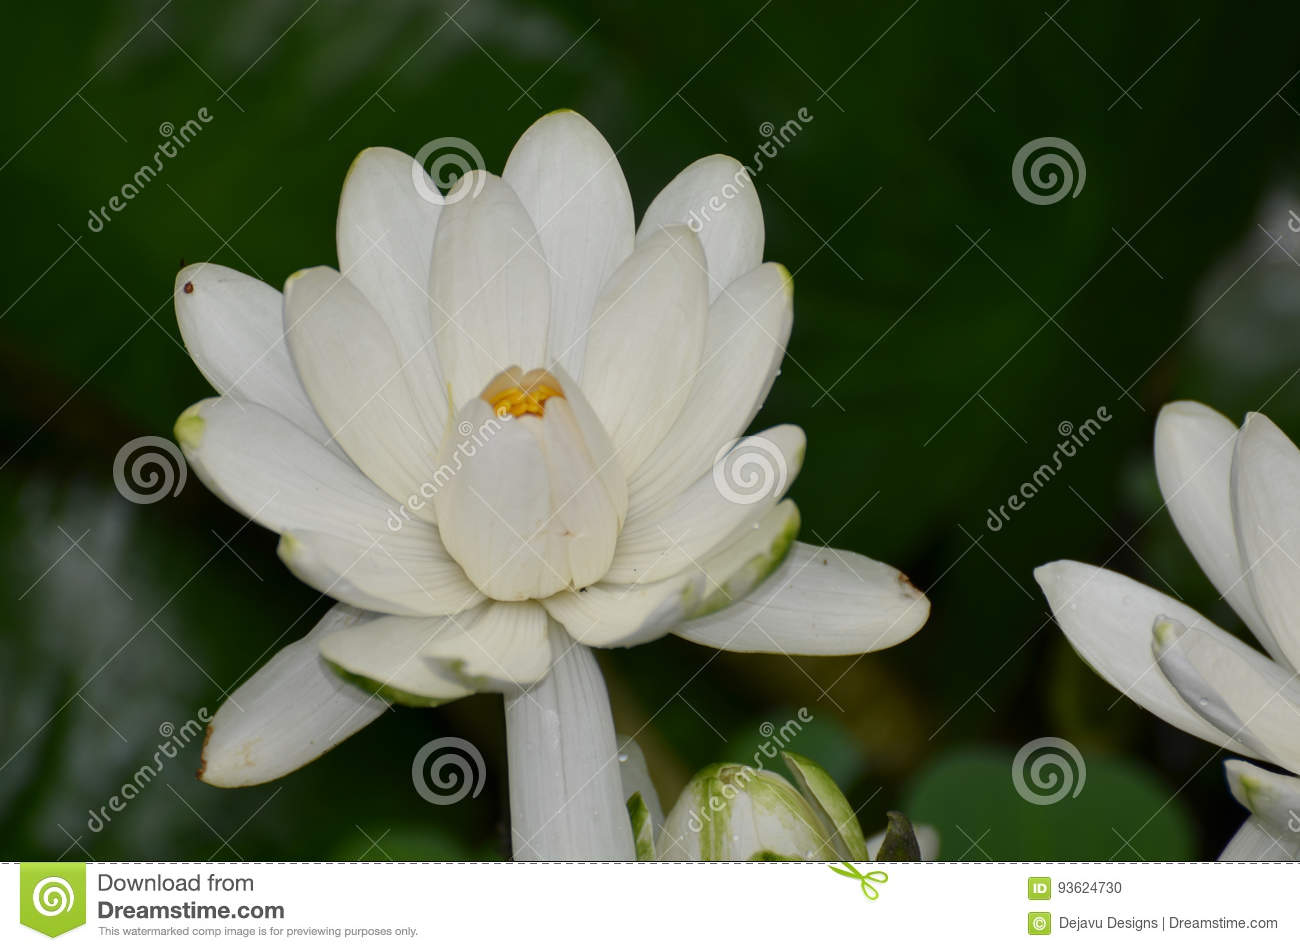 White Flowering Lotus Flower Blossom In A Pond Stock Photo Image